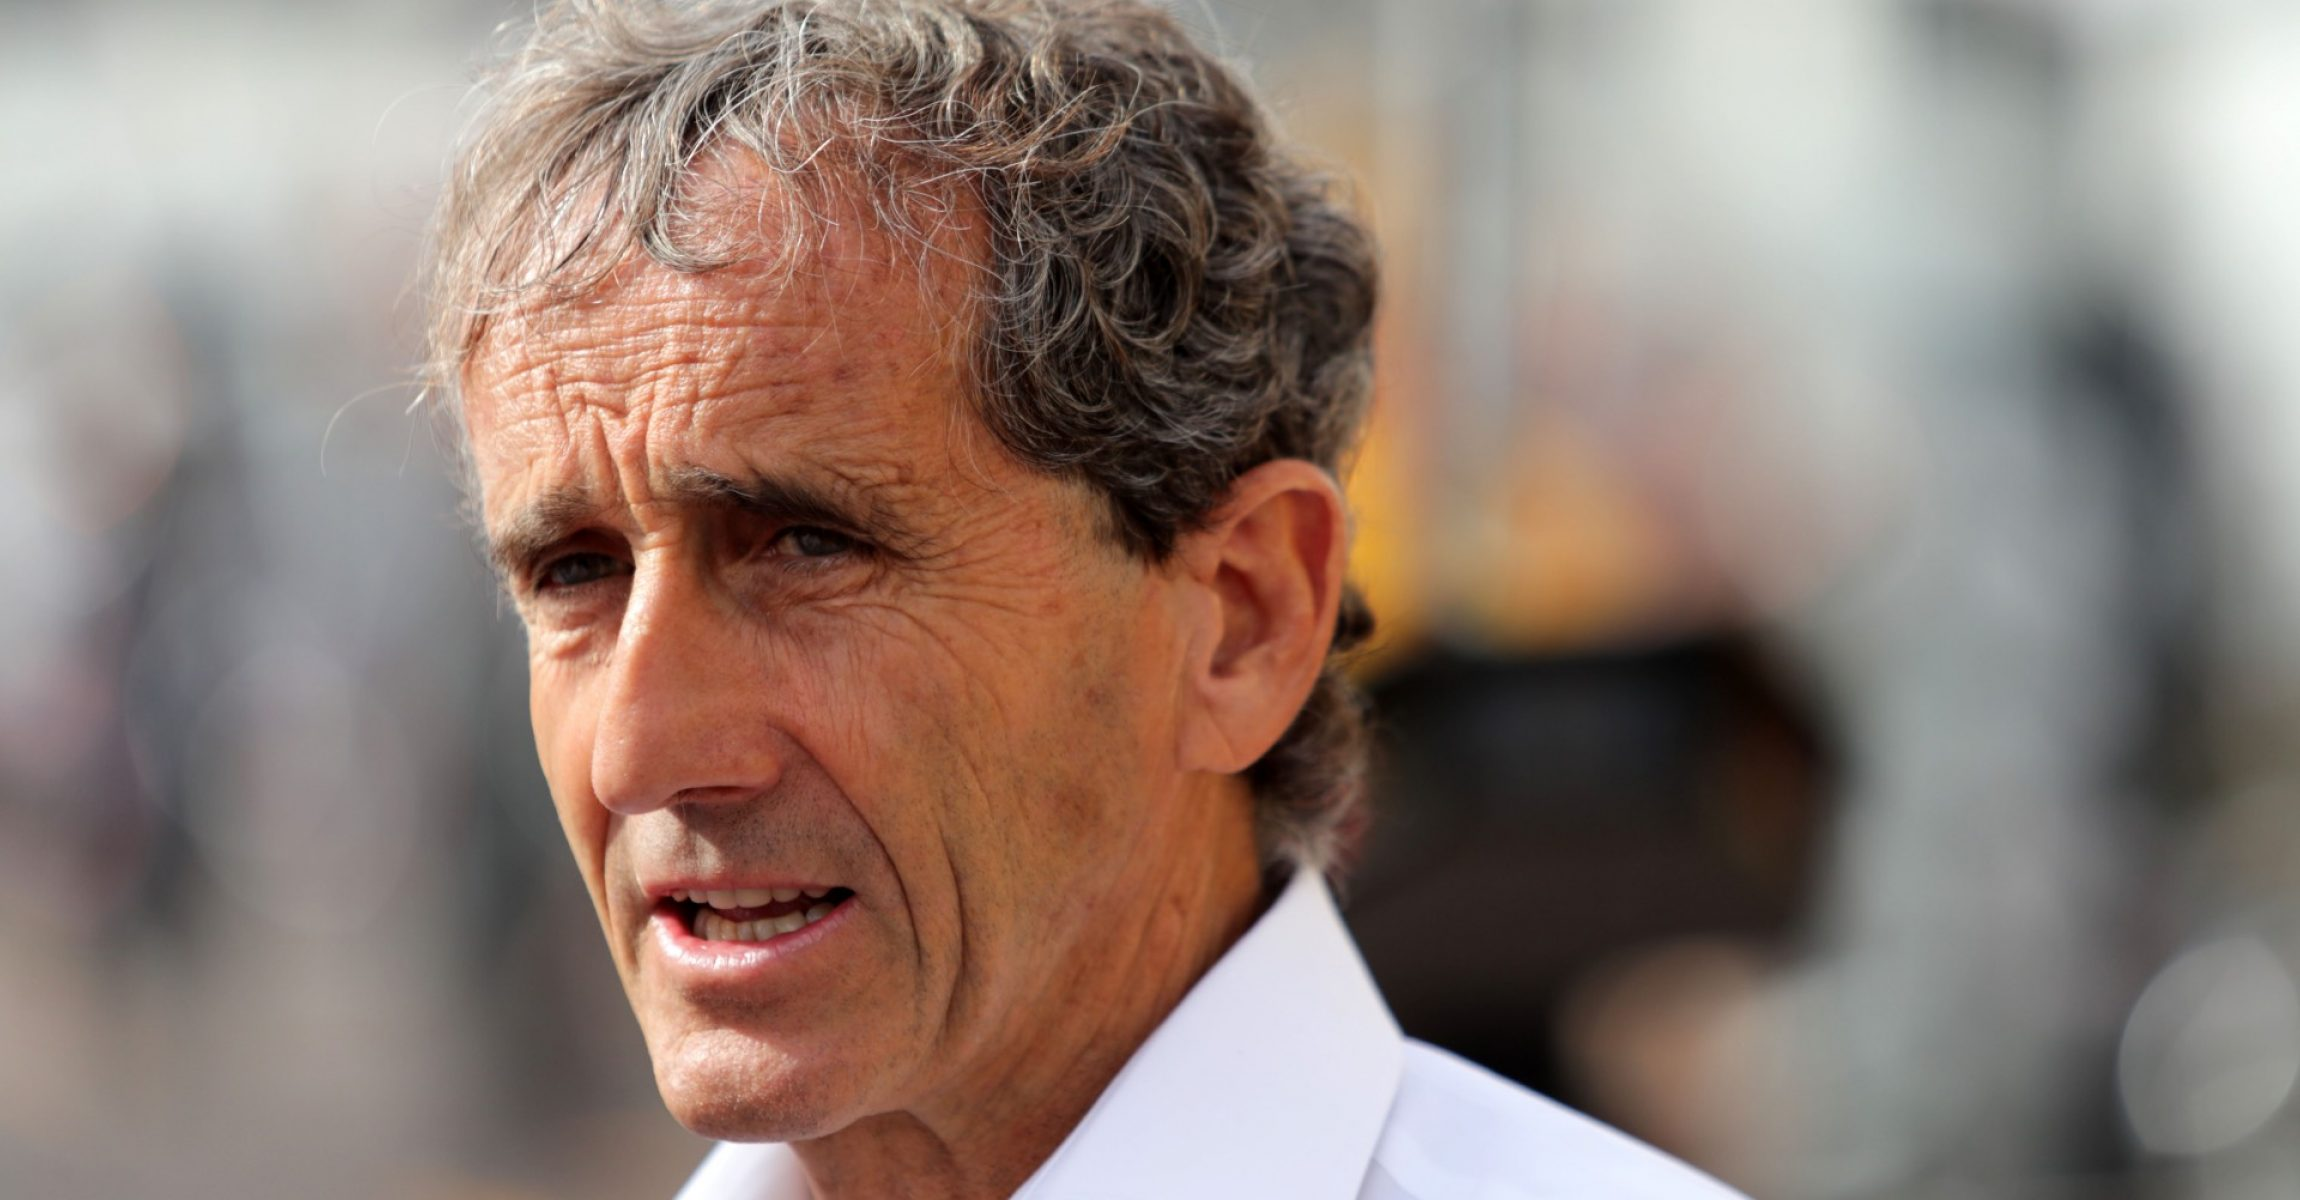 Alain Prost (FRA) Renault Sport F1 Team Special Advisor. Monaco Grand Prix, Thursday 25th May 2017. Monte Carlo, Monaco.